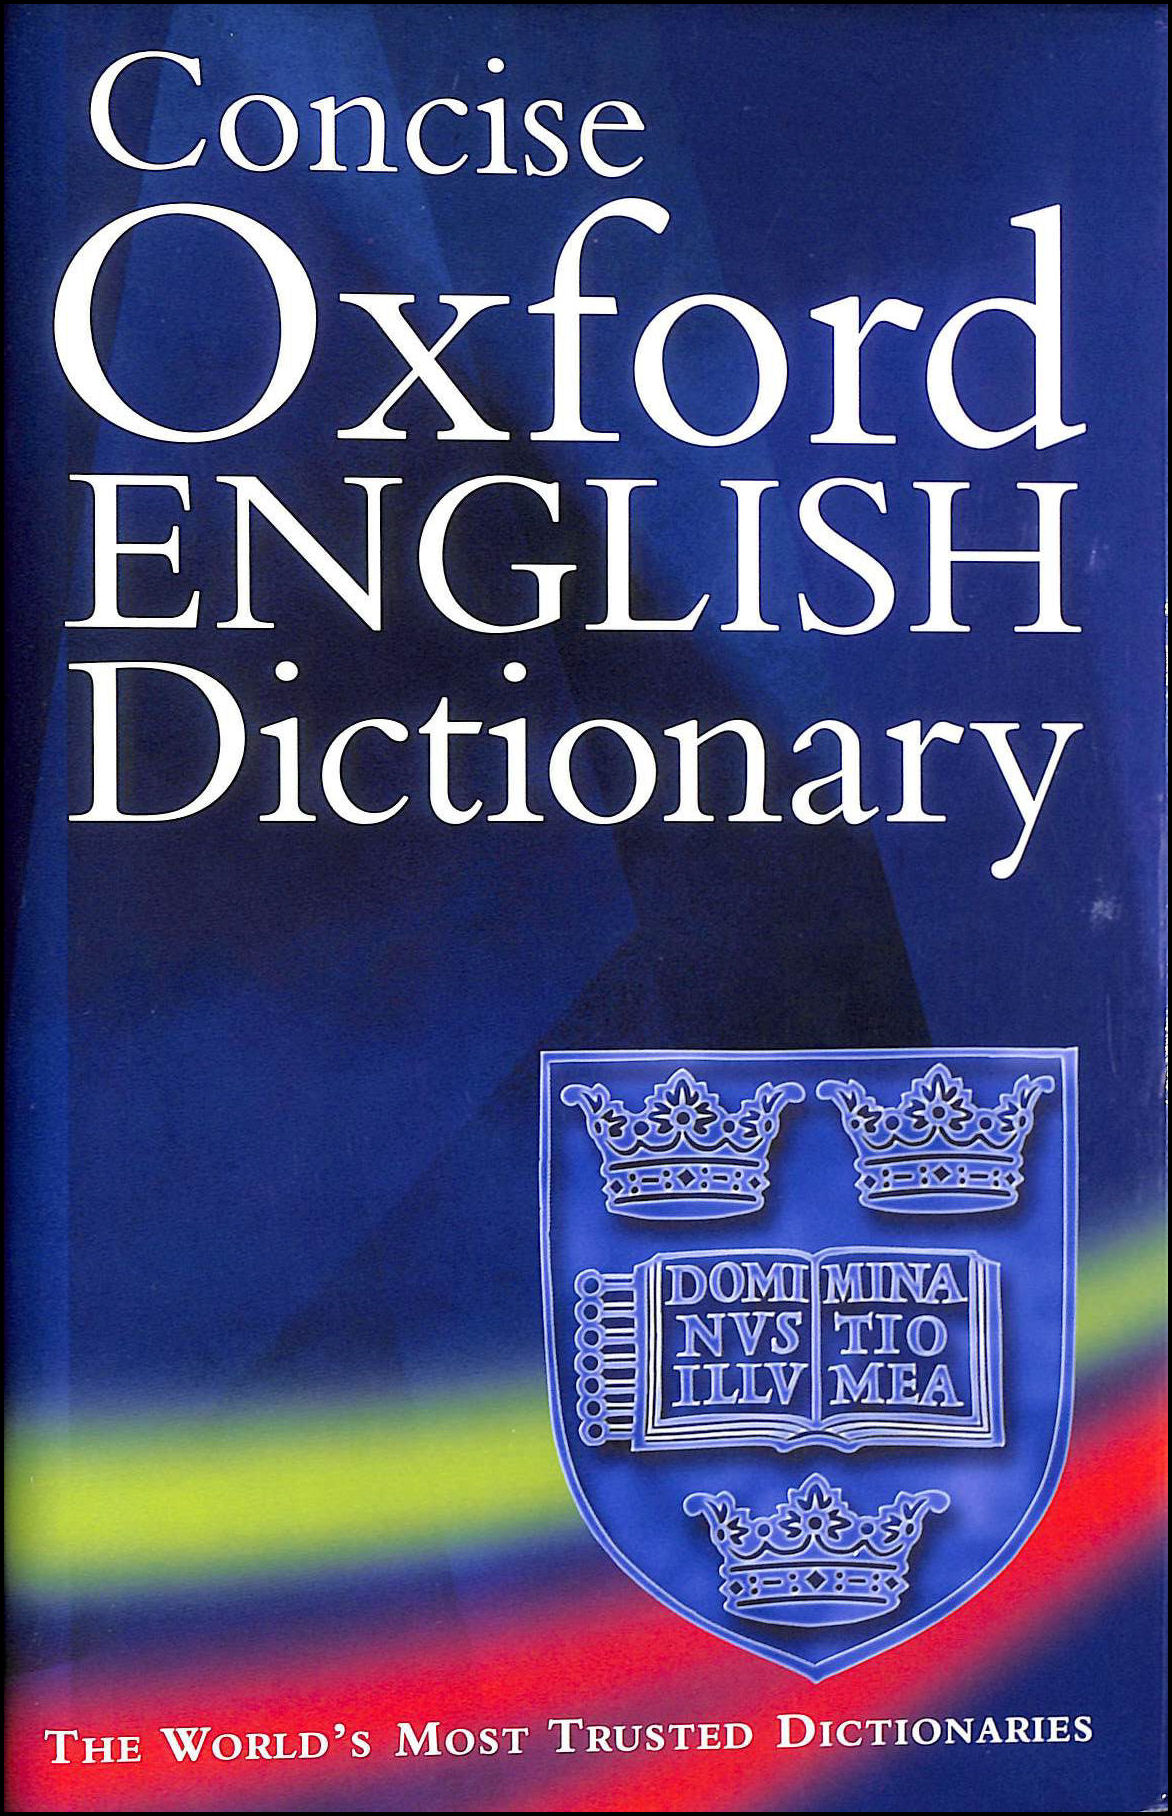 Concise Oxford English Dictionary: 11th edition revised, H.W. Fowler; F.G. Fowler; Catherine Soanes [Editor]; Angus Stevenson [Editor];